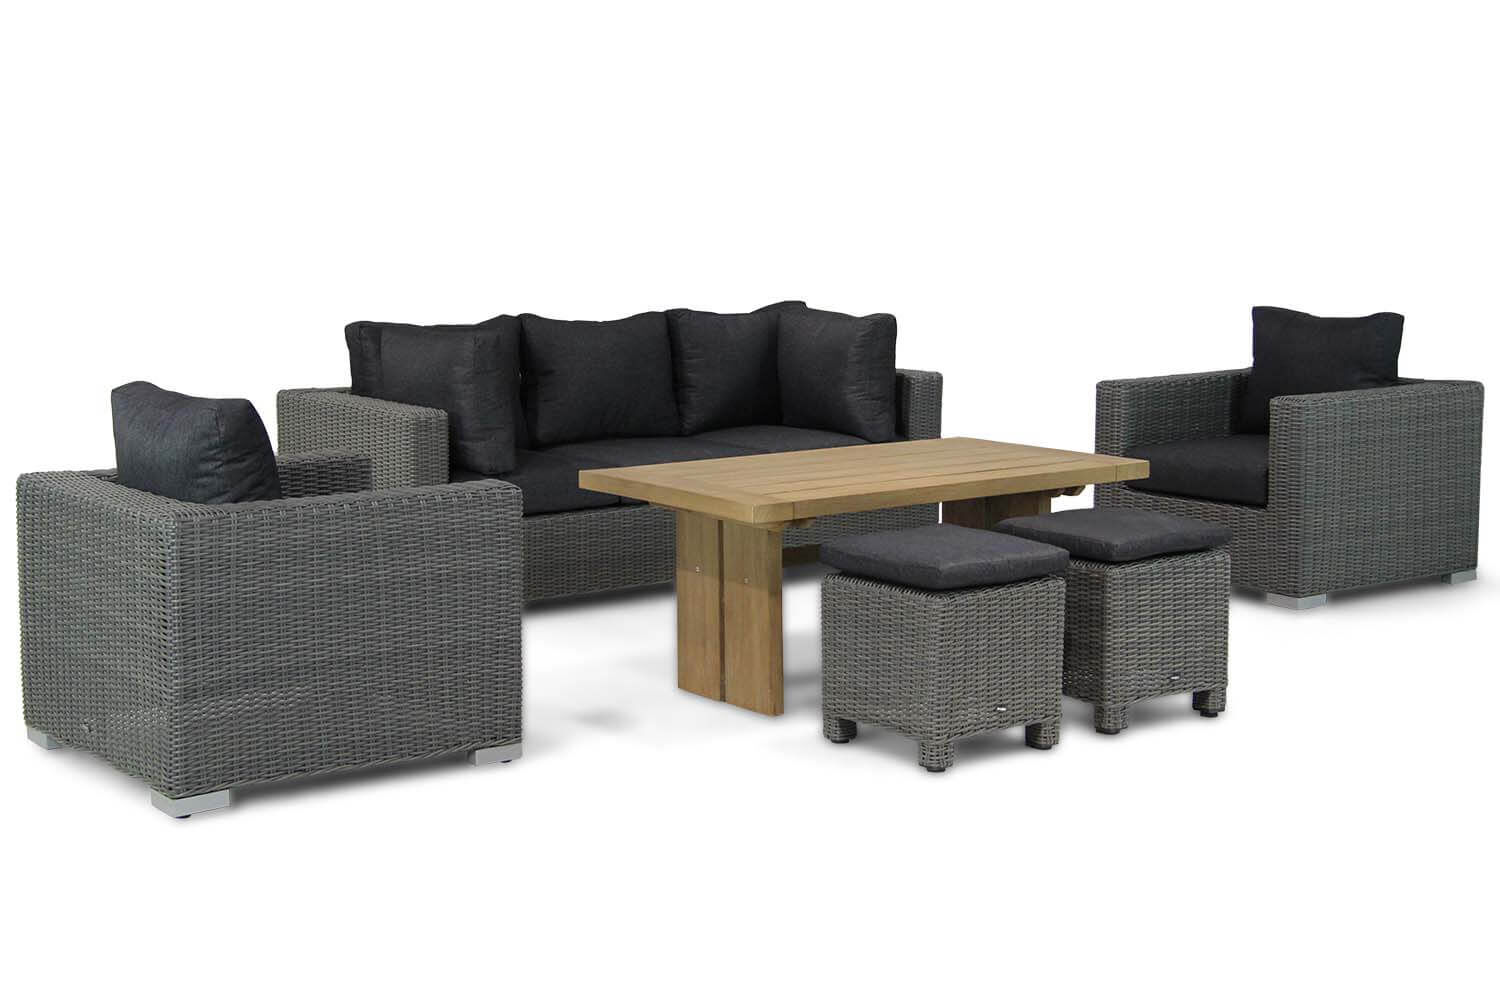 Garden Collections Toronto/Brighton 140 cm stoel-bank loungeset 6-delig